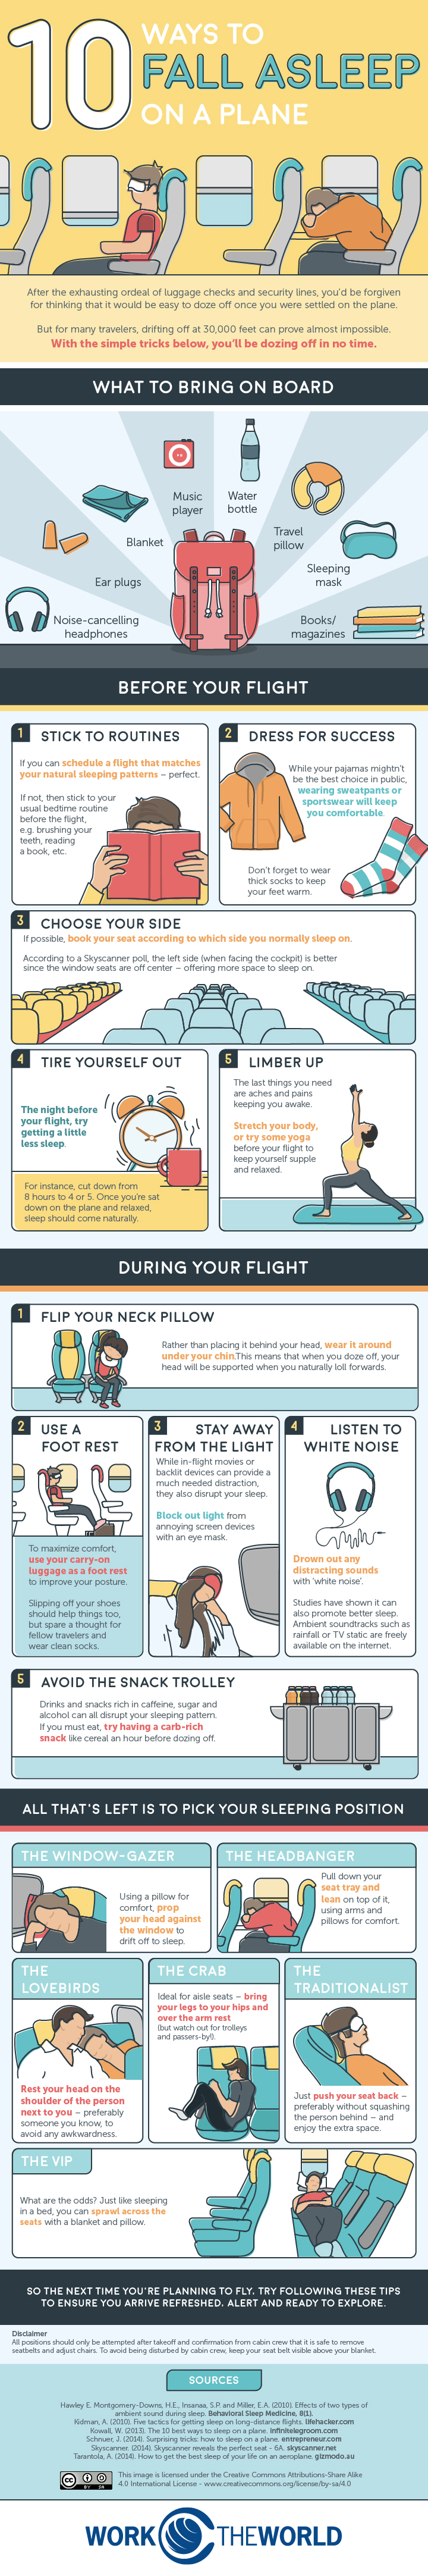 How to fall asleep on an airplane #infographic